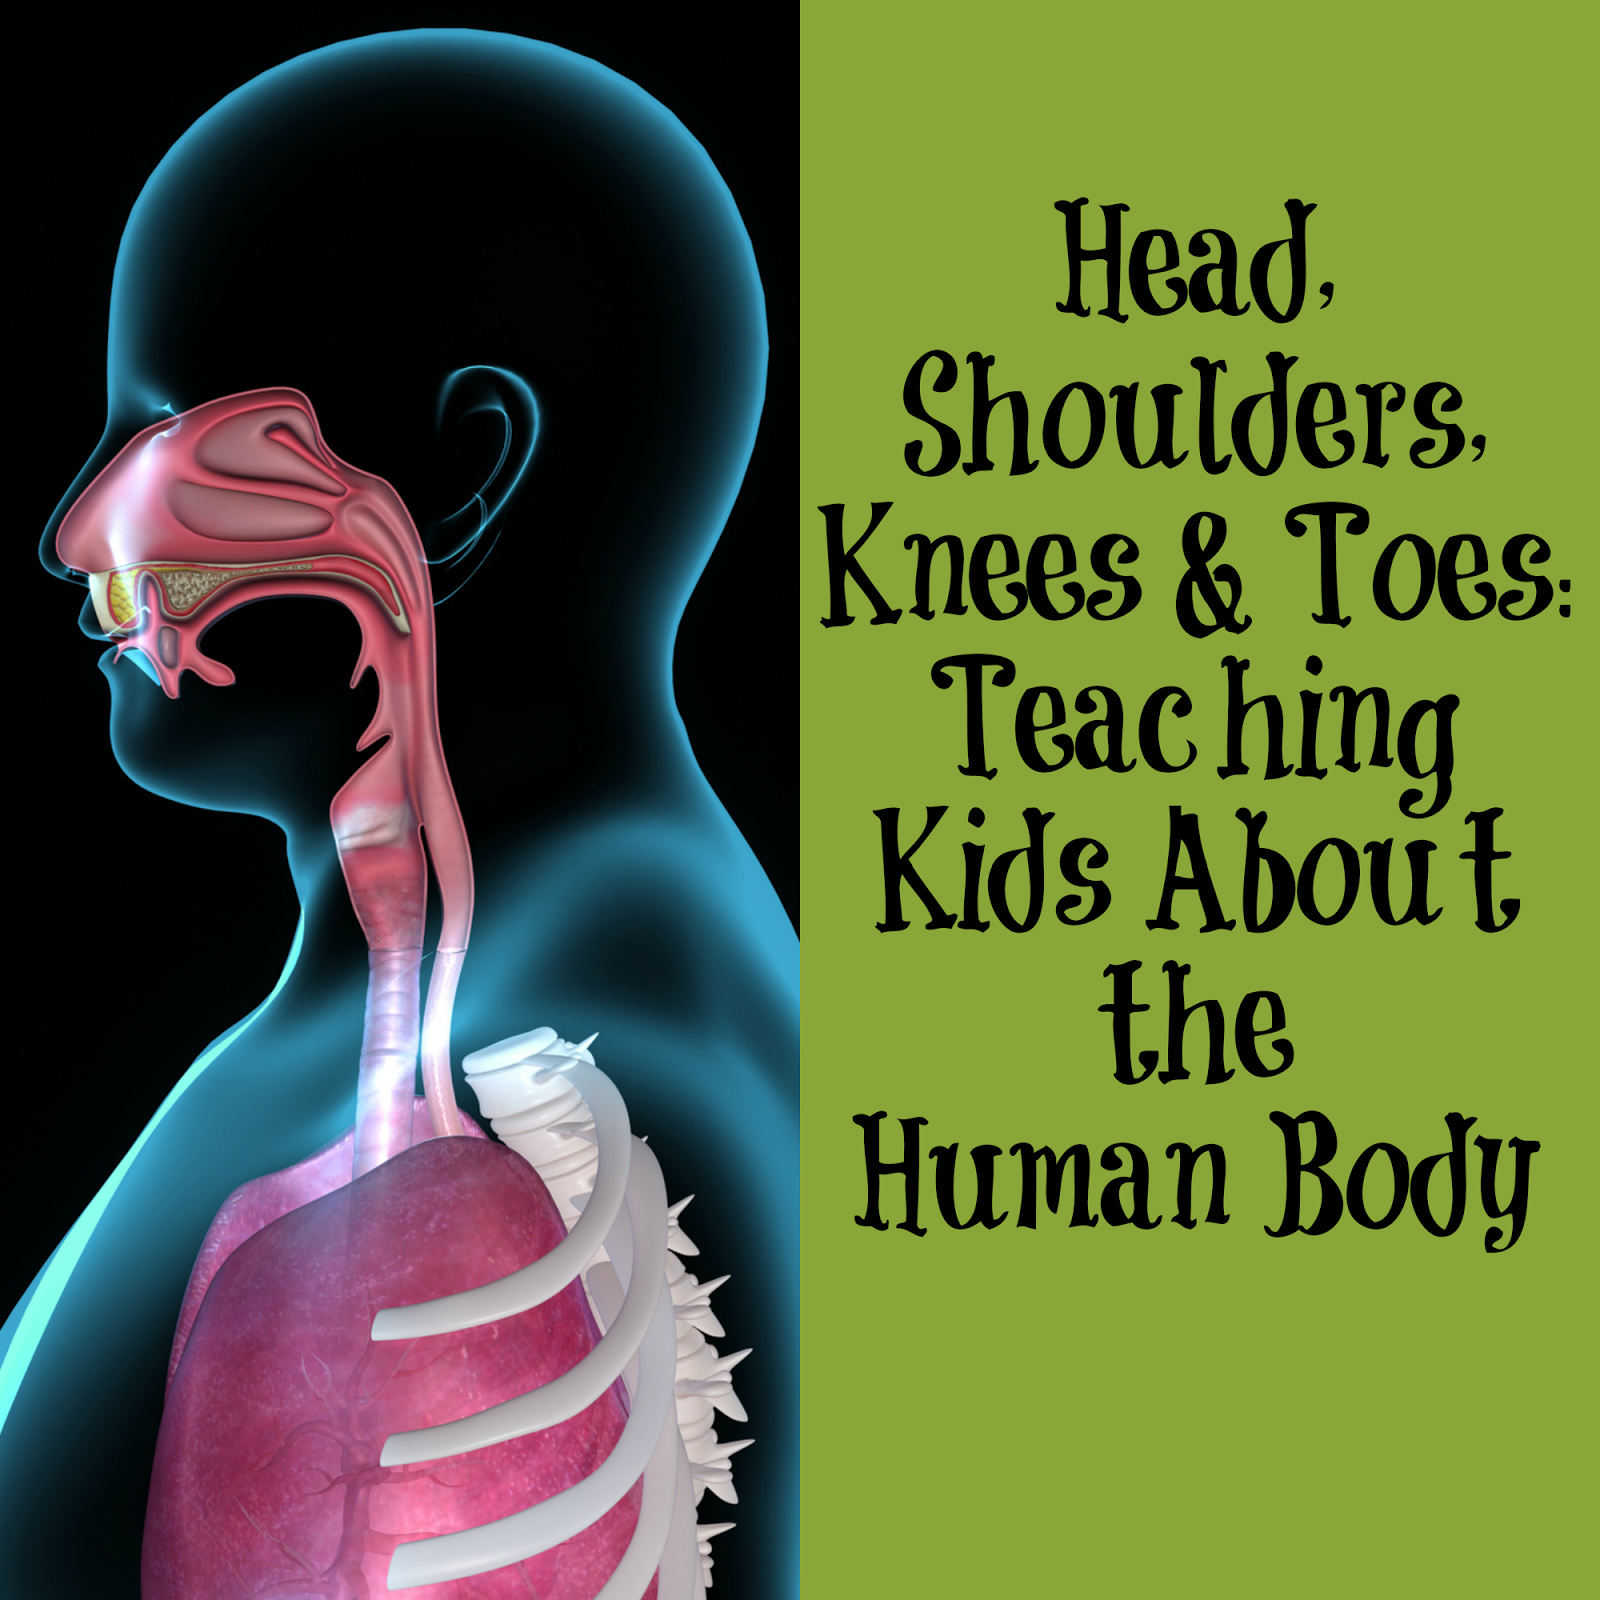 Head Shoulders Knees Toes Teaching Kids About The Human Body